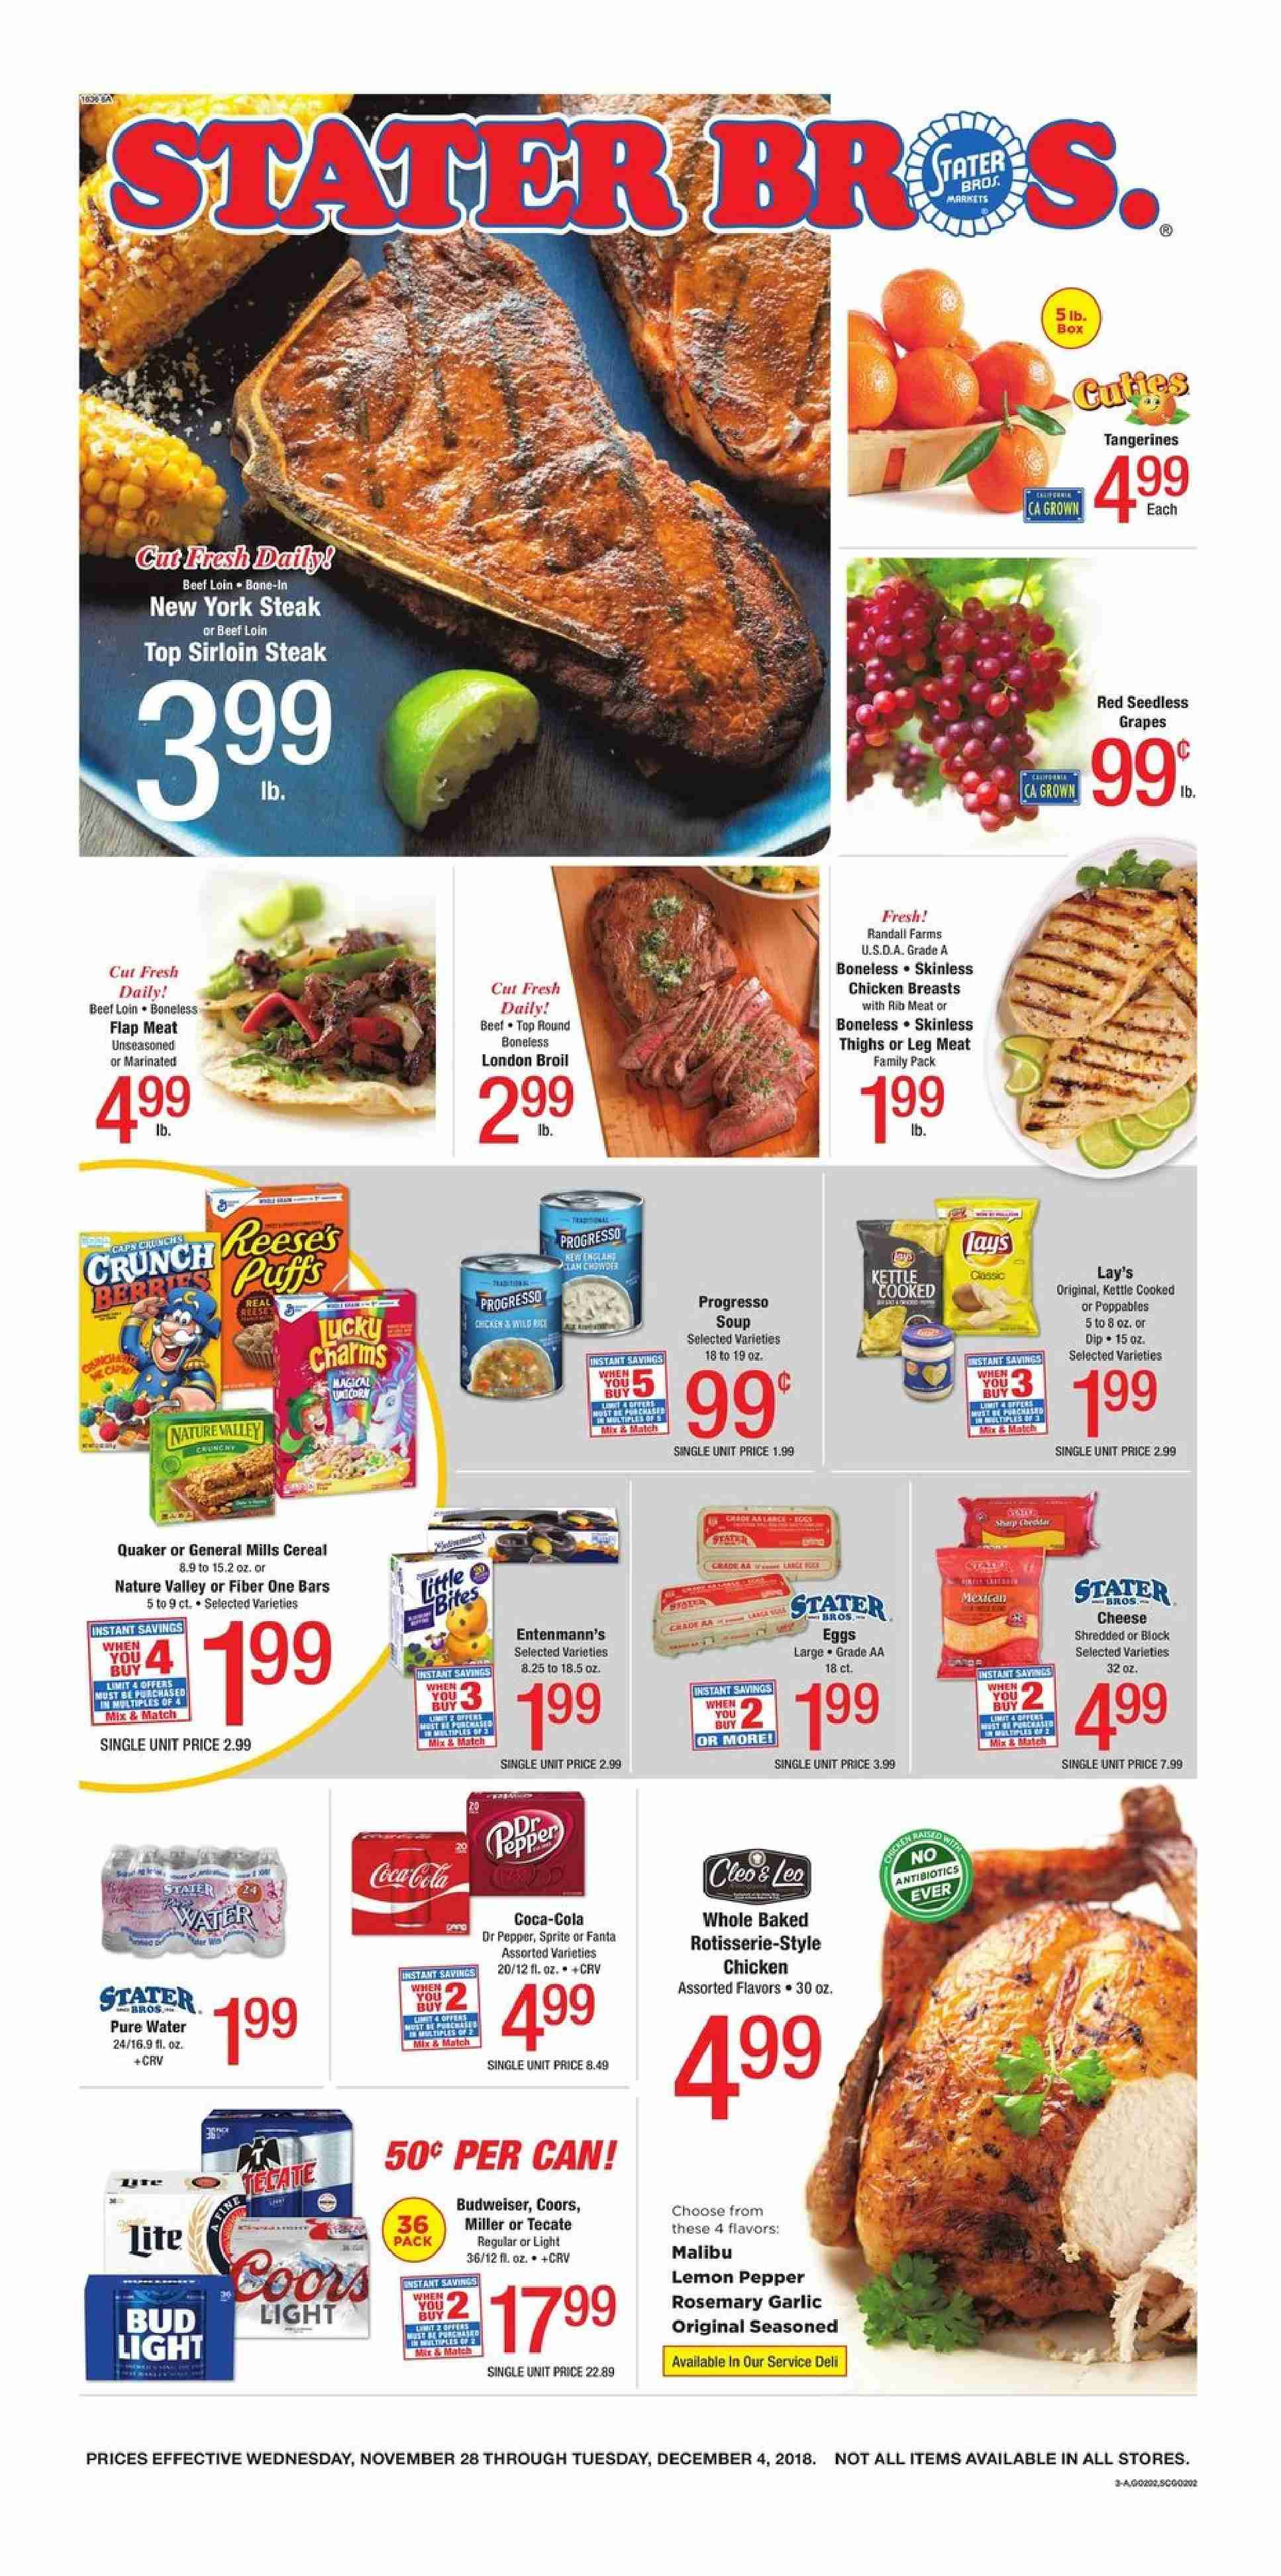 Stater Bros. Flyer - 11.28.2018 - 12.04.2018 - Sales products - Budweiser, Coors, seedless grapes, Entenmann's, Quaker, Progresso, dip, cereals, Nature Valley, Fiber One, rosemary, Coca-Cola, Sprite, Fanta, Dr. Pepper, Malibu, beer, Bud Light, Miller, chicken, chicken breasts, beef sirloin, steak, sirloin steak, water. Page 1.